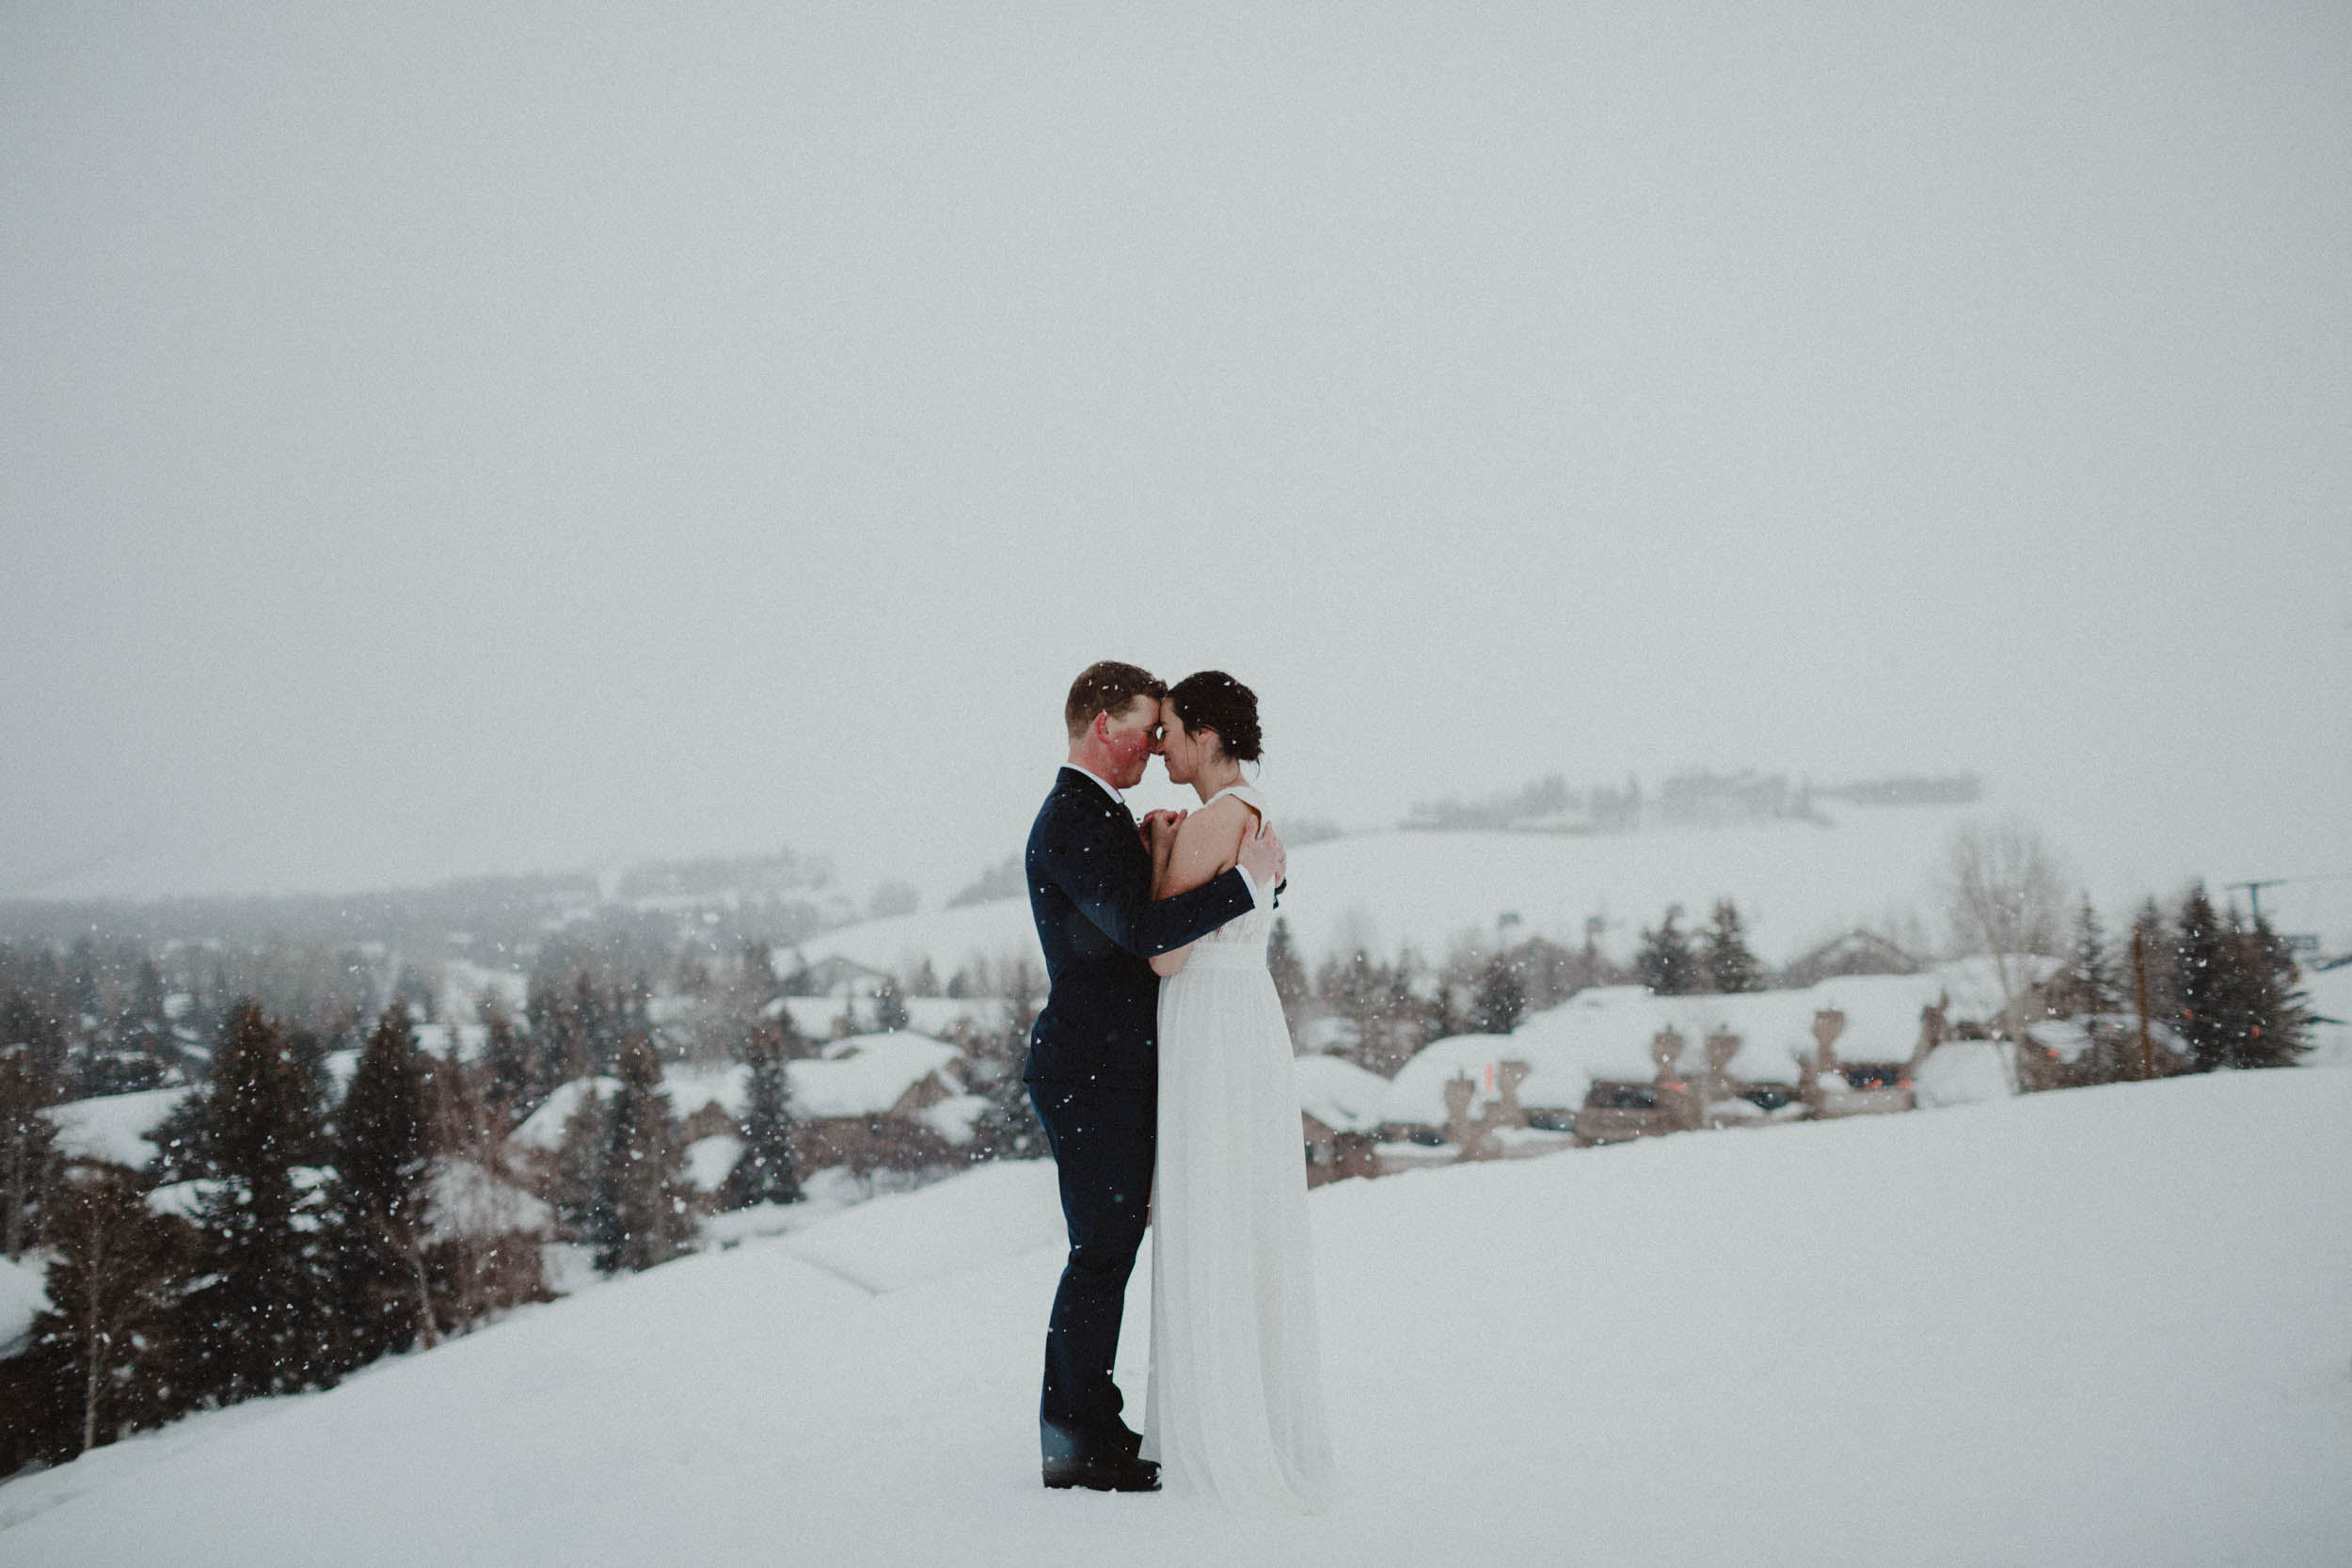 David & Tessa | Sun Valley Winter Wedding